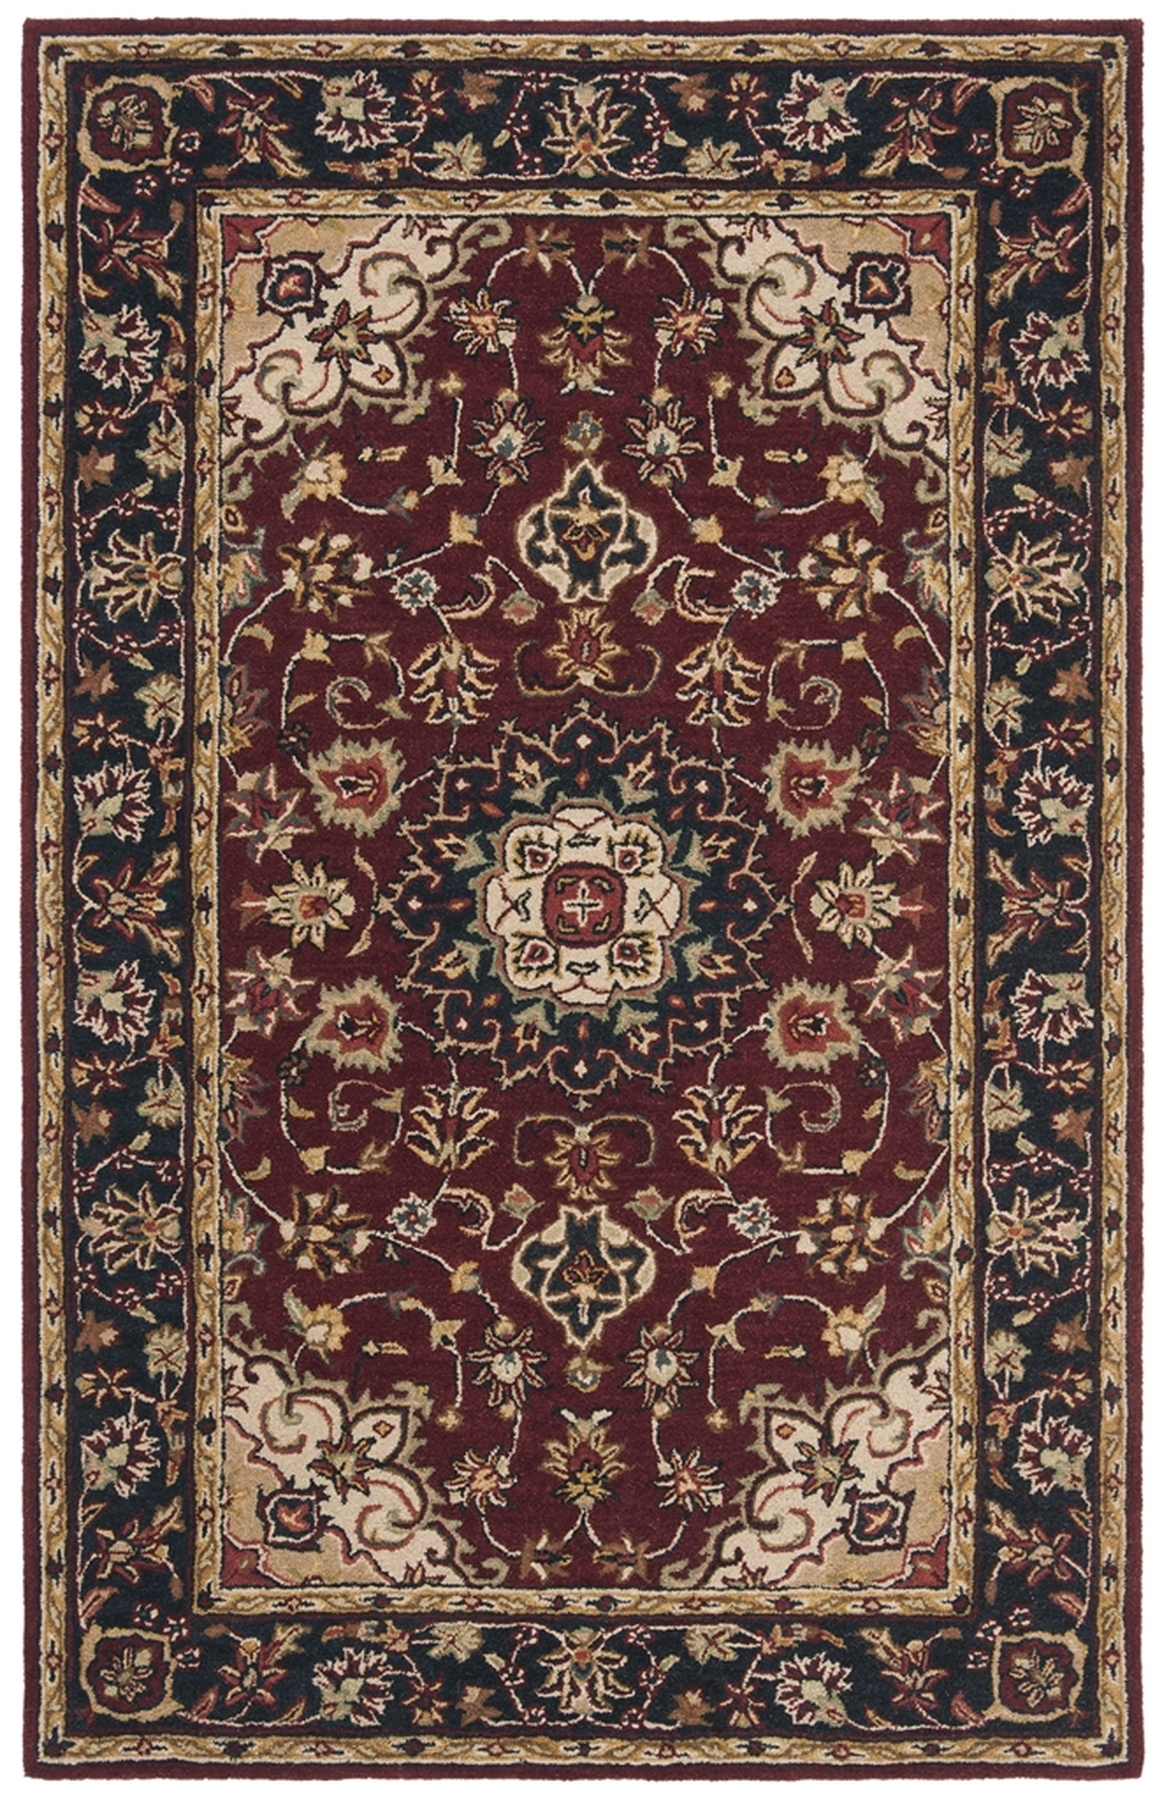 Rug Cl362a Classic Area Rugs By Safavieh